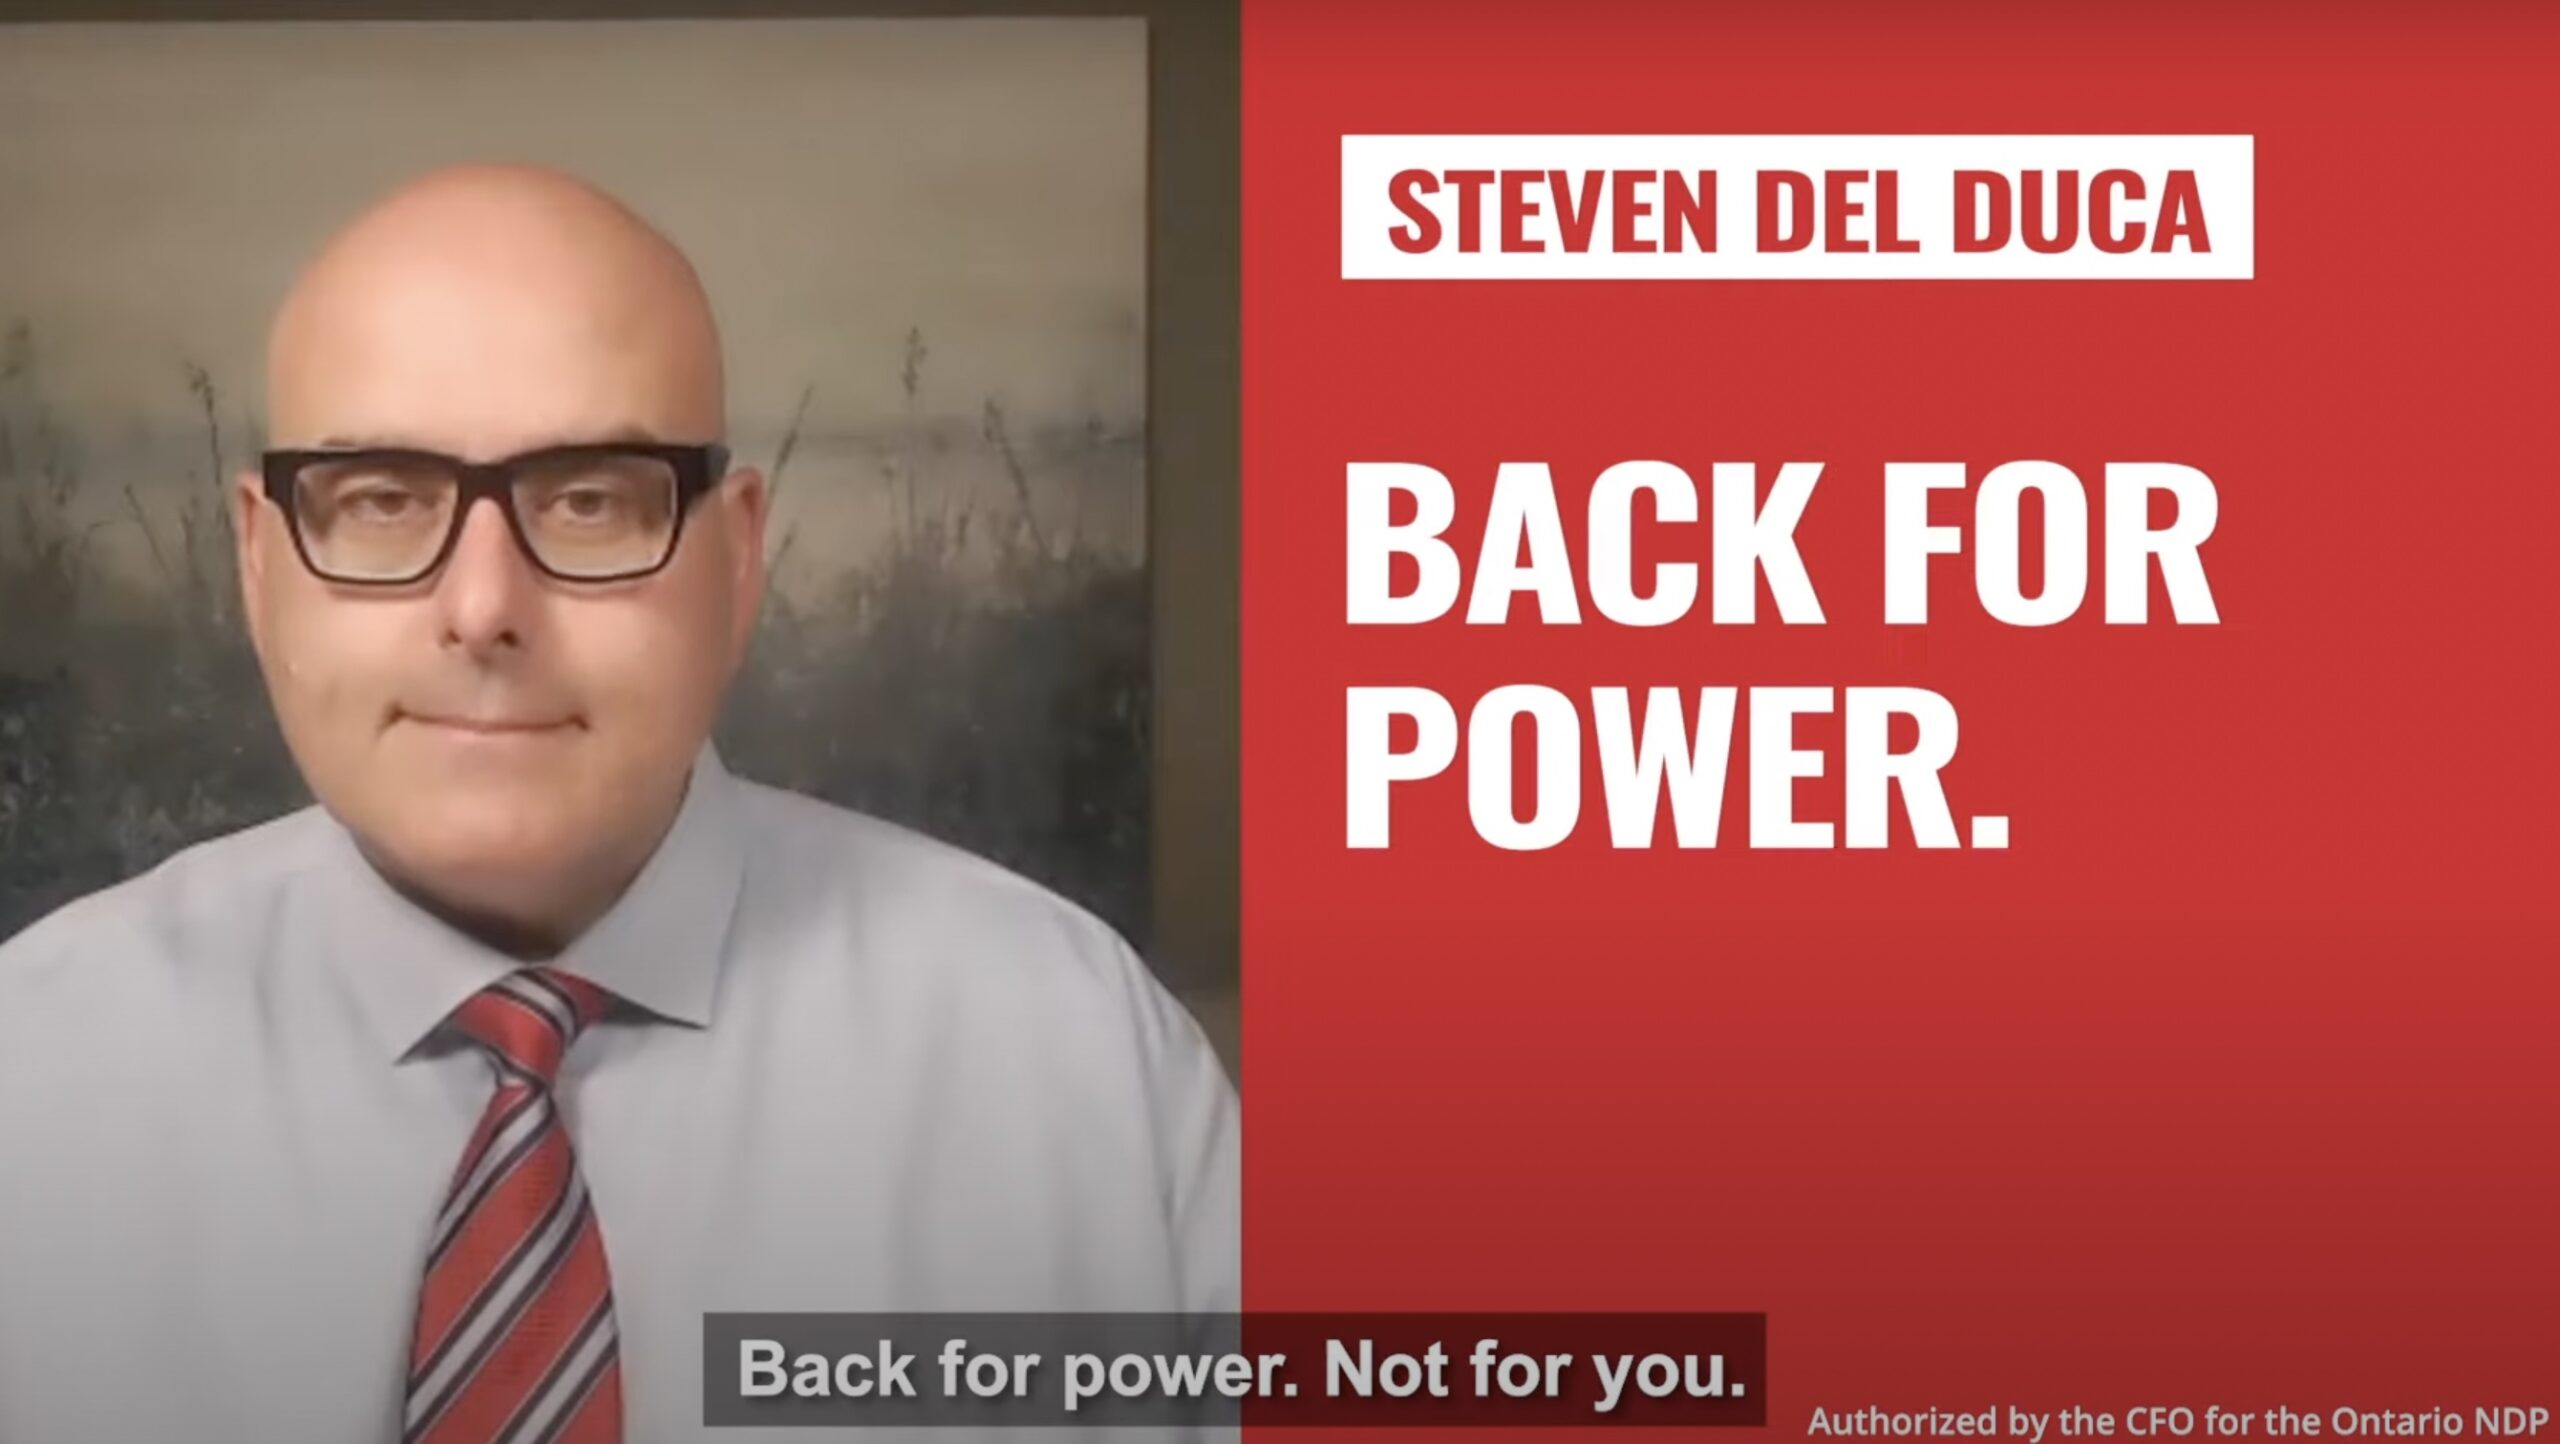 Ontario NDP releases attack ad defining Liberal leader as 'back for power, not for you'